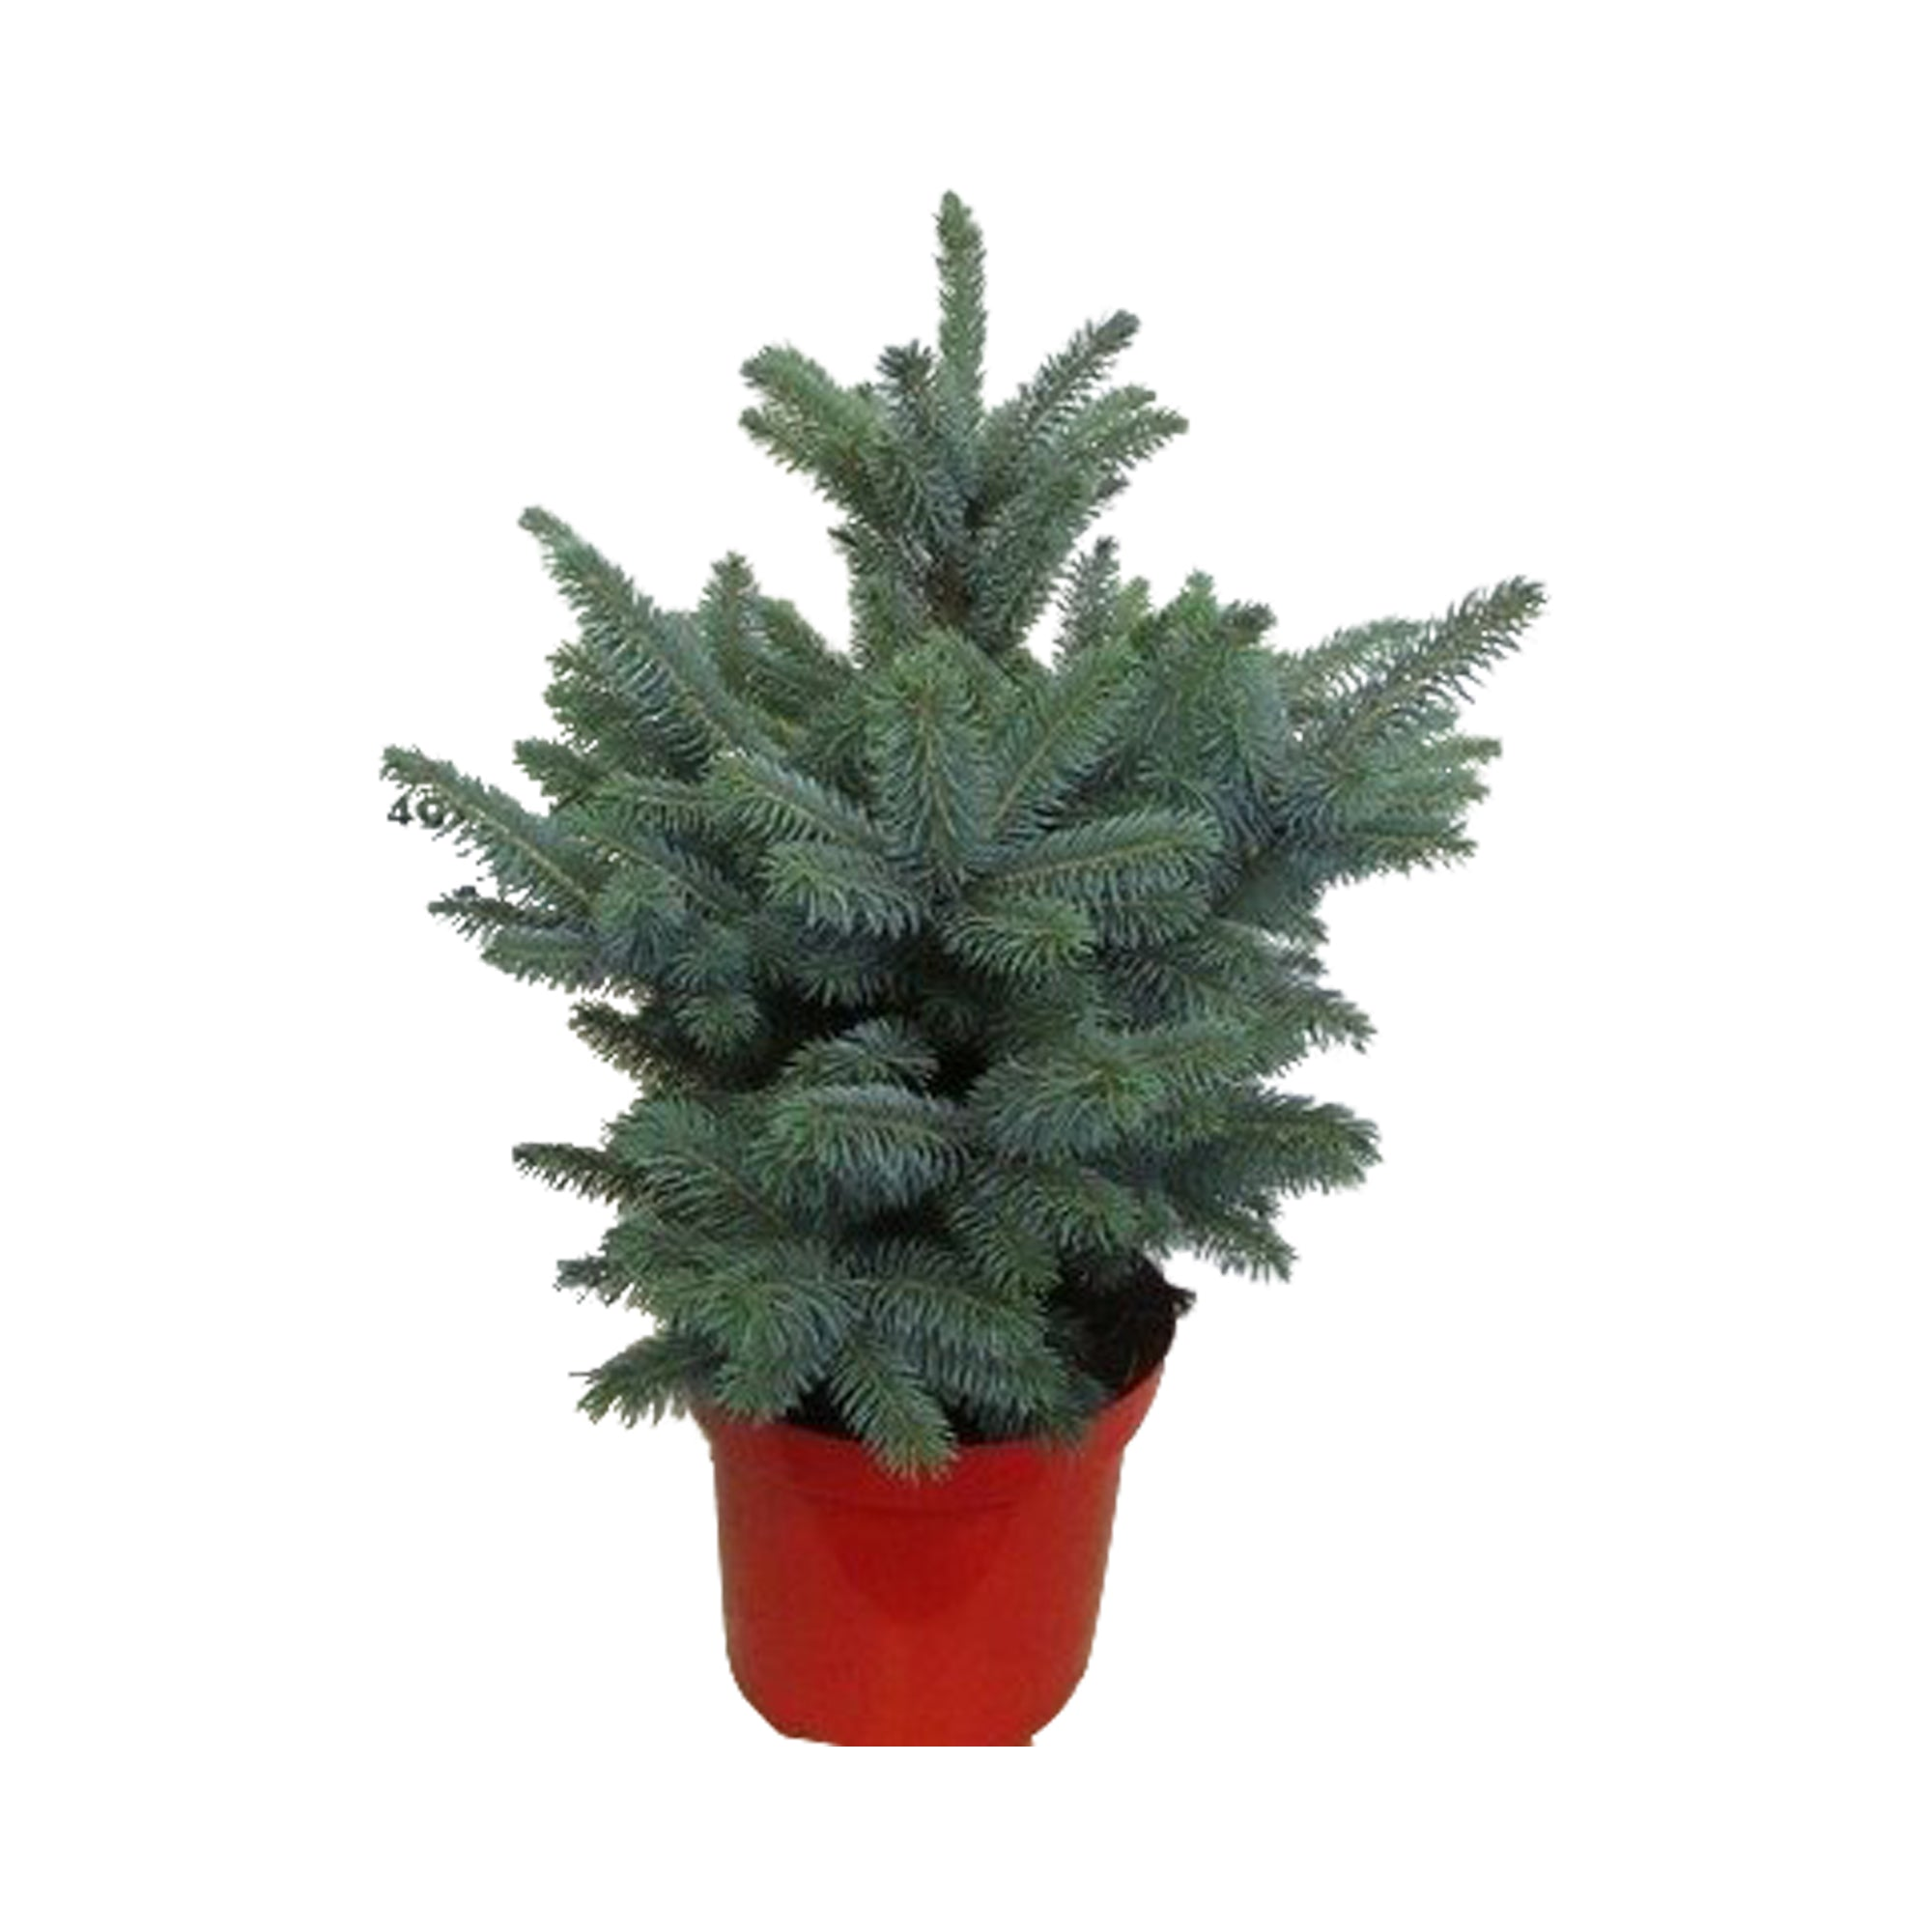 Choice of Green - Picea pungens